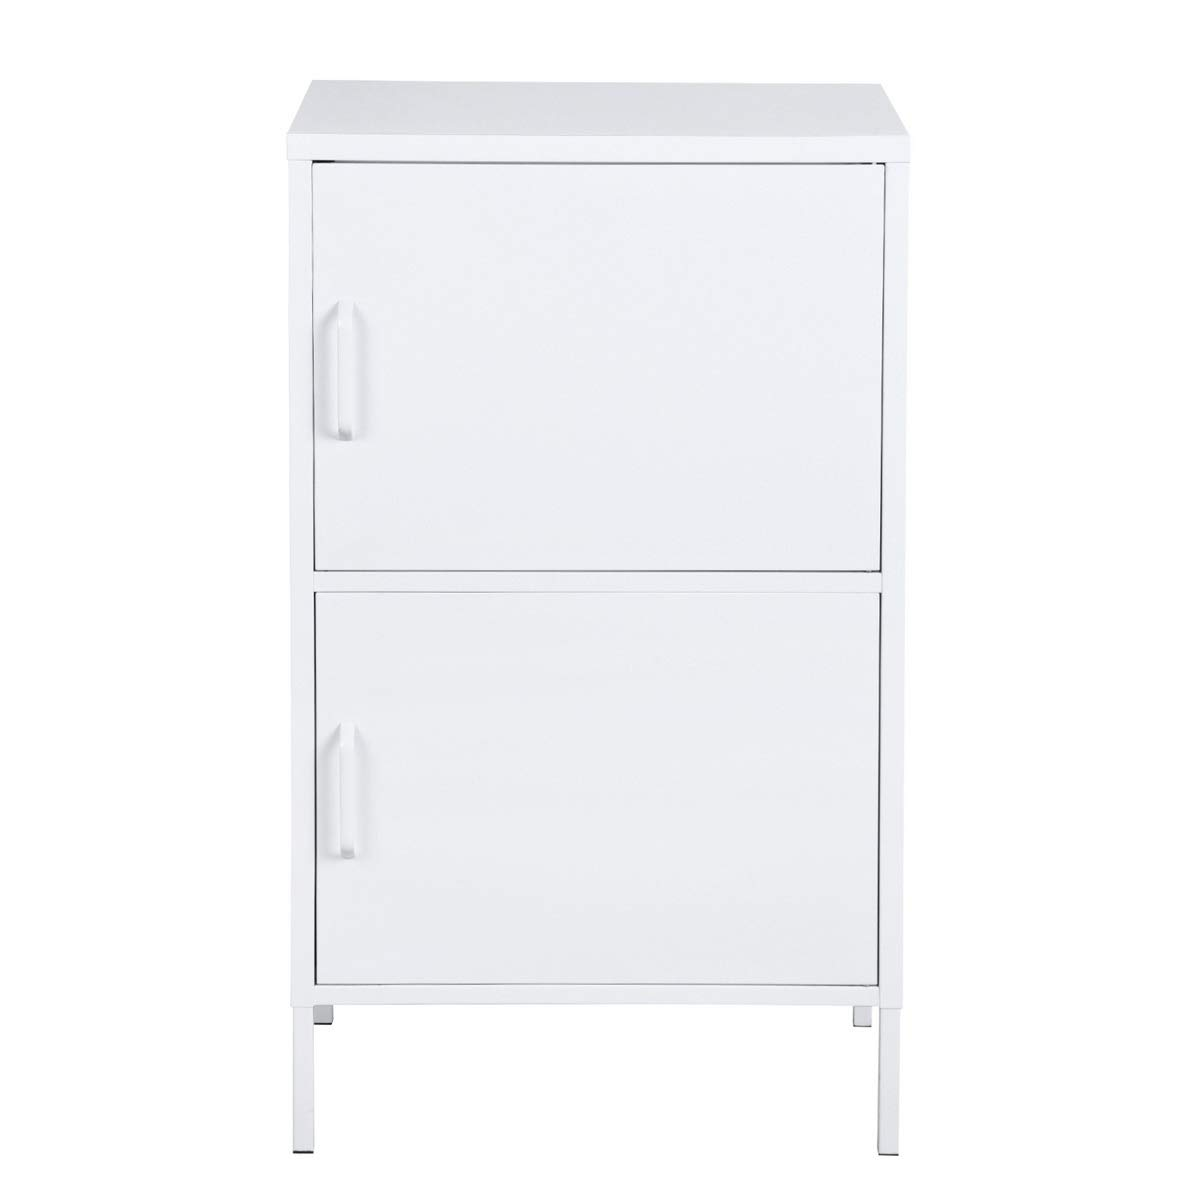 HouseinBox Small Metal Storage Carbinet Perfectly Made Two Door Locker for Better Organization Metal Locker for Home and Office by HouseinBox